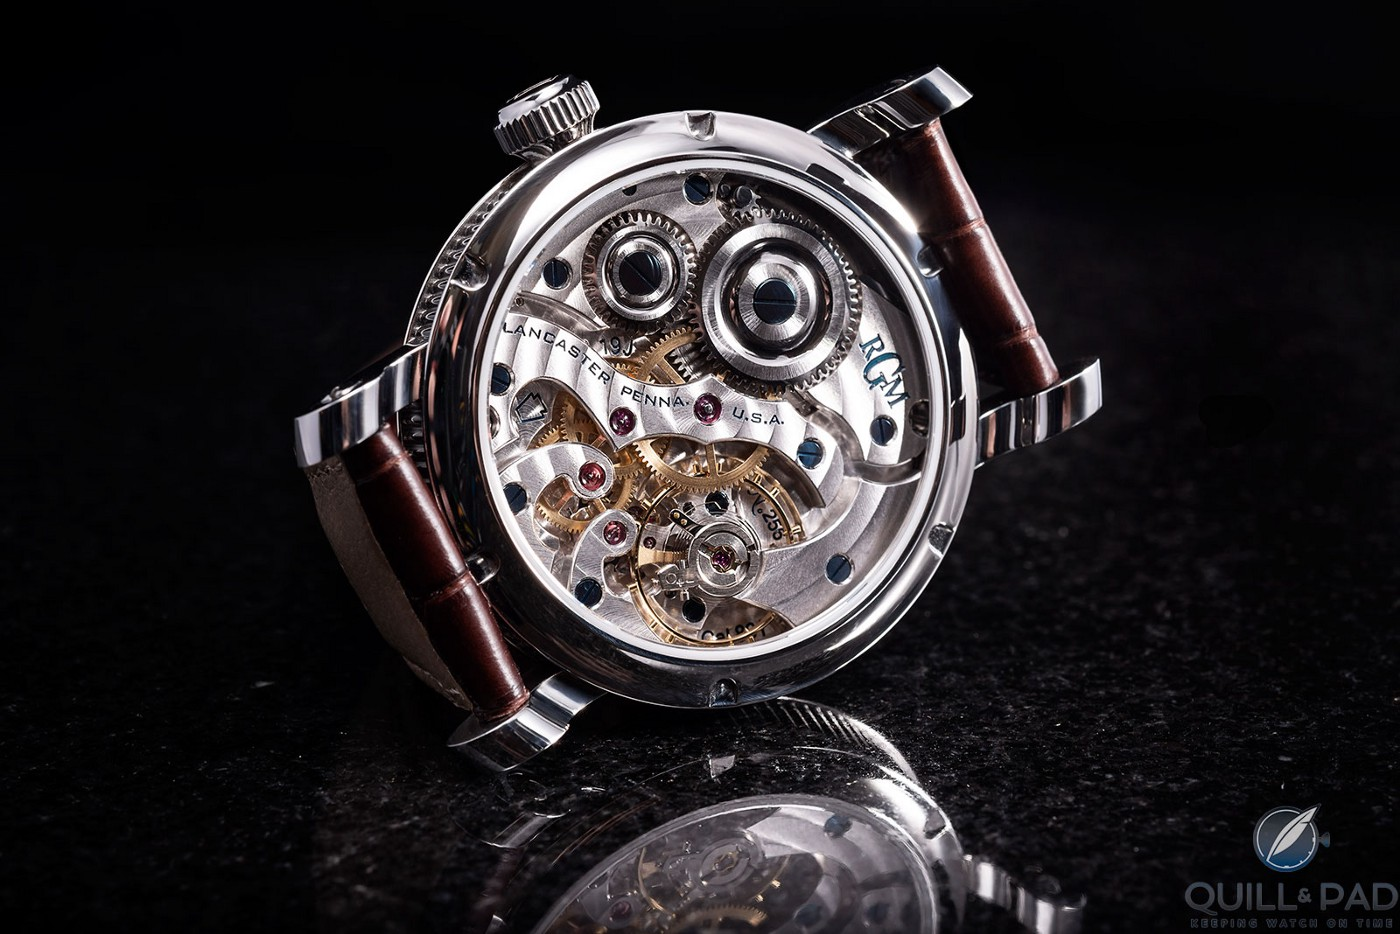 View through the display back to the RGM Caliber 801 movement in the Classic Enamel